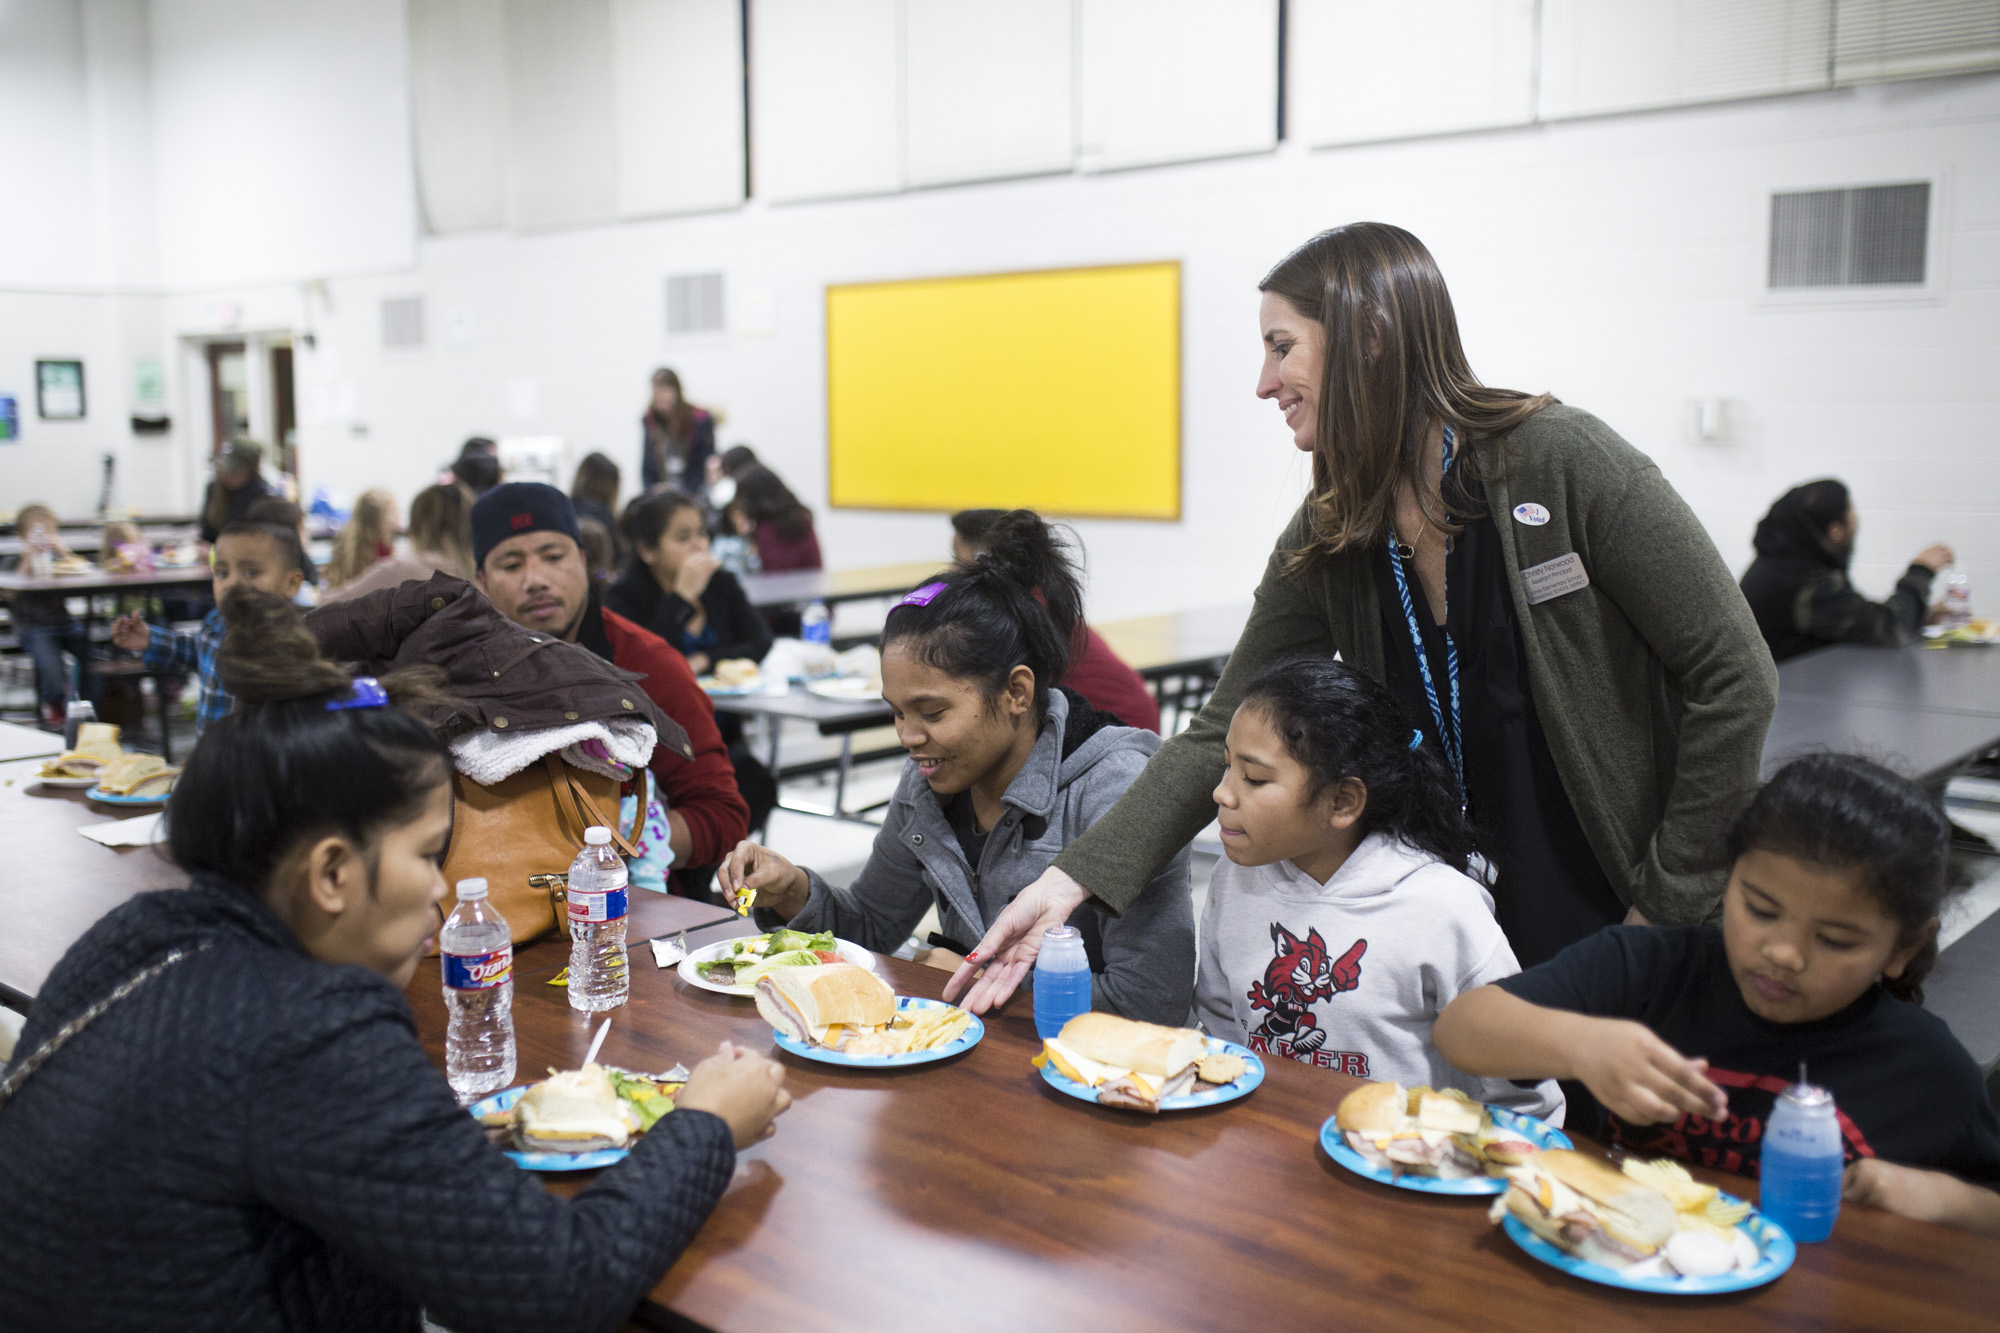 Assitant Principal of Jones Elementary School Christy Norwood (right) gives a plate of food to Tien Lalimo (center) at the Coke with a Cop event at Jones Elementary School in Springdale, February 13, 2018.